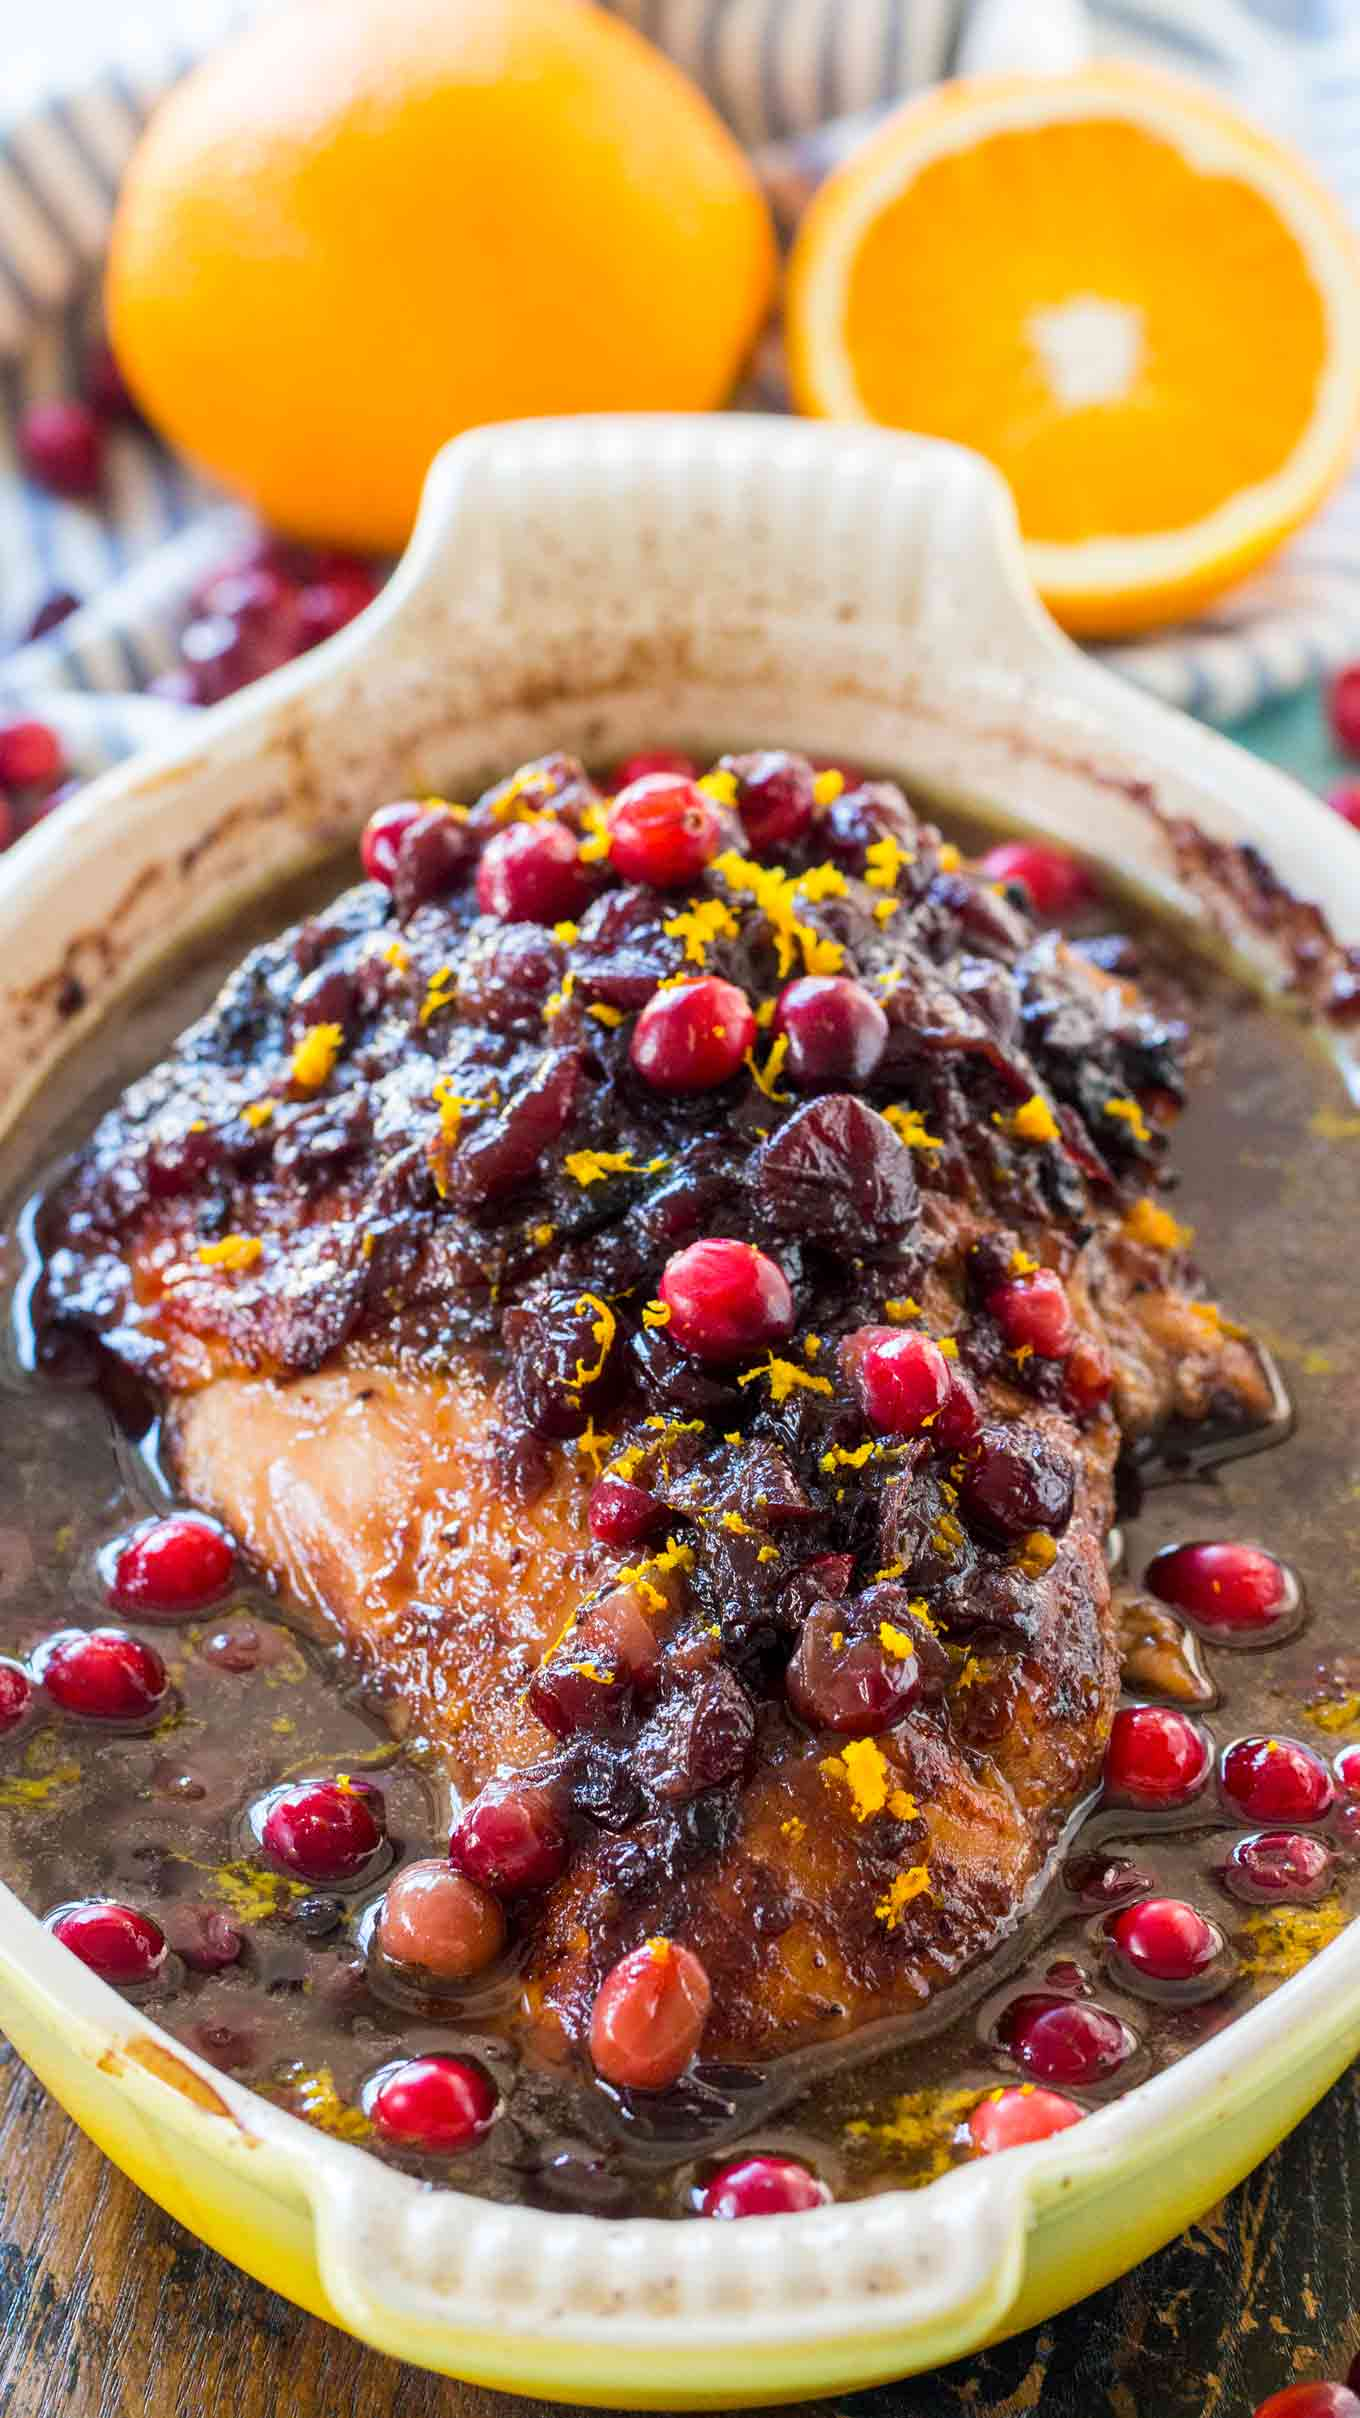 Cranberry Orange Turkey Breast Recipe Sweet And Savory Meals